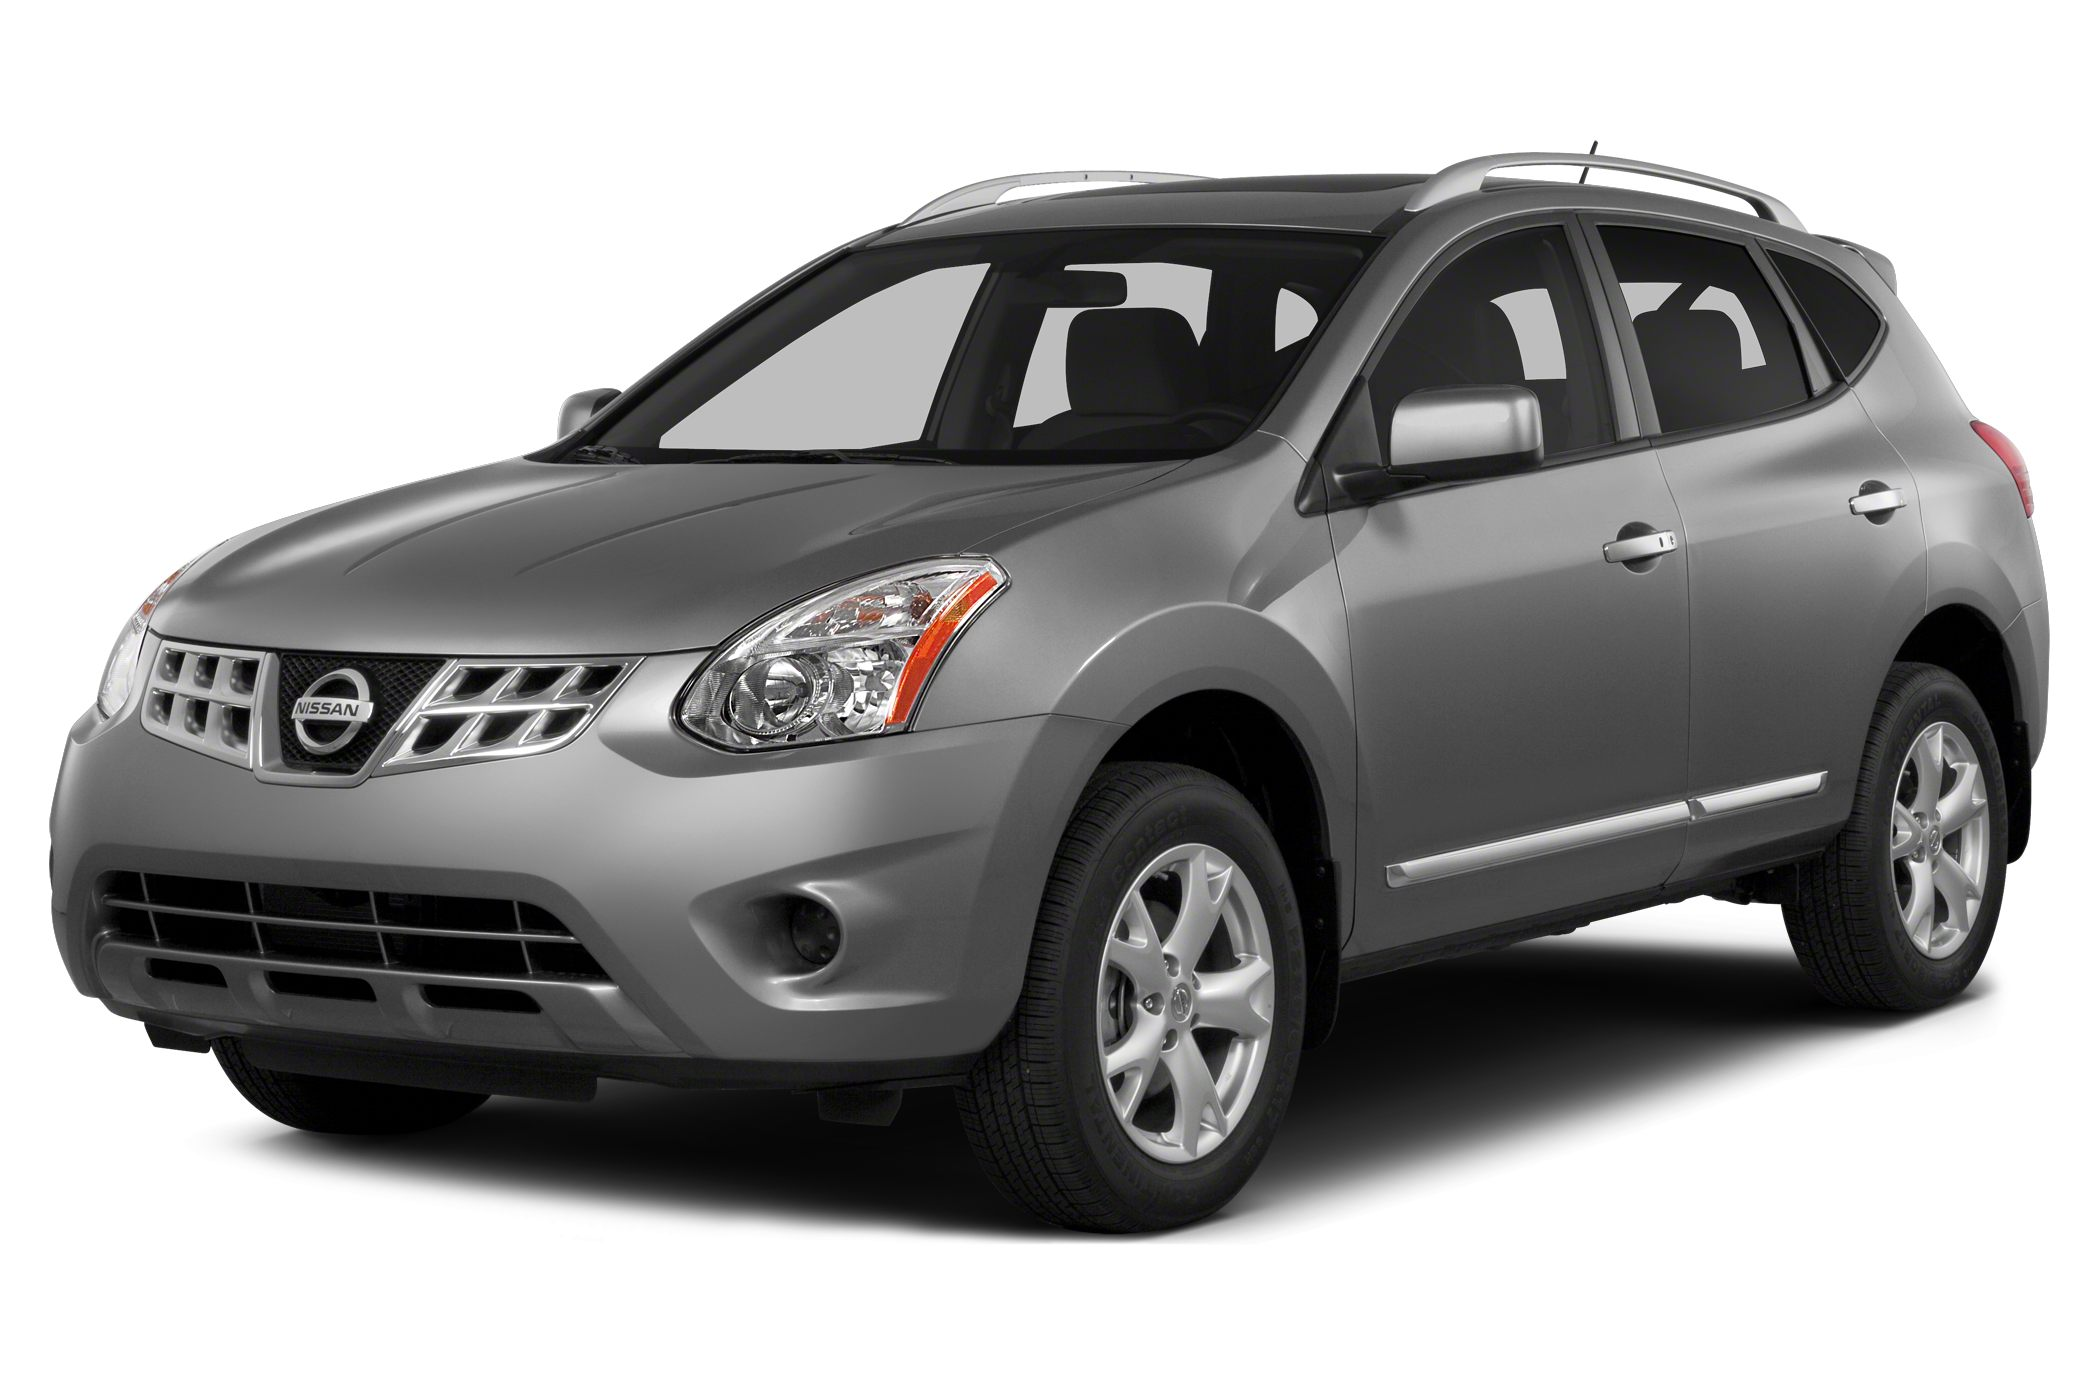 2013 Nissan Rogue S SUV for sale in Lake City for $17,500 with 7,962 miles